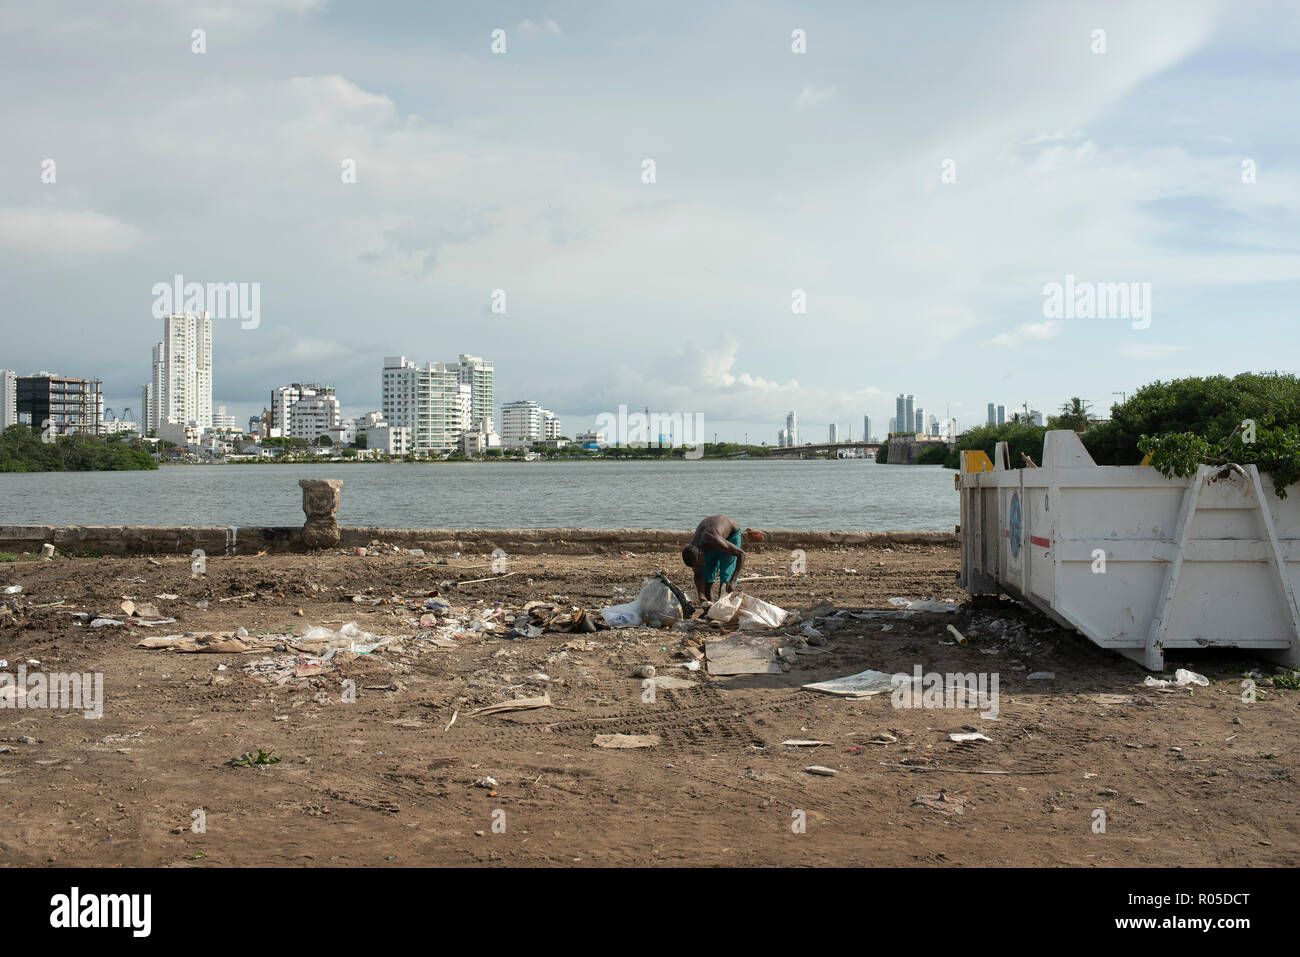 Juxtaposition of rich and poor. Young African man searches through rubbish with shiny new buildings in the background. Cartagena, Colombia. Sep 2018 - Stock Image